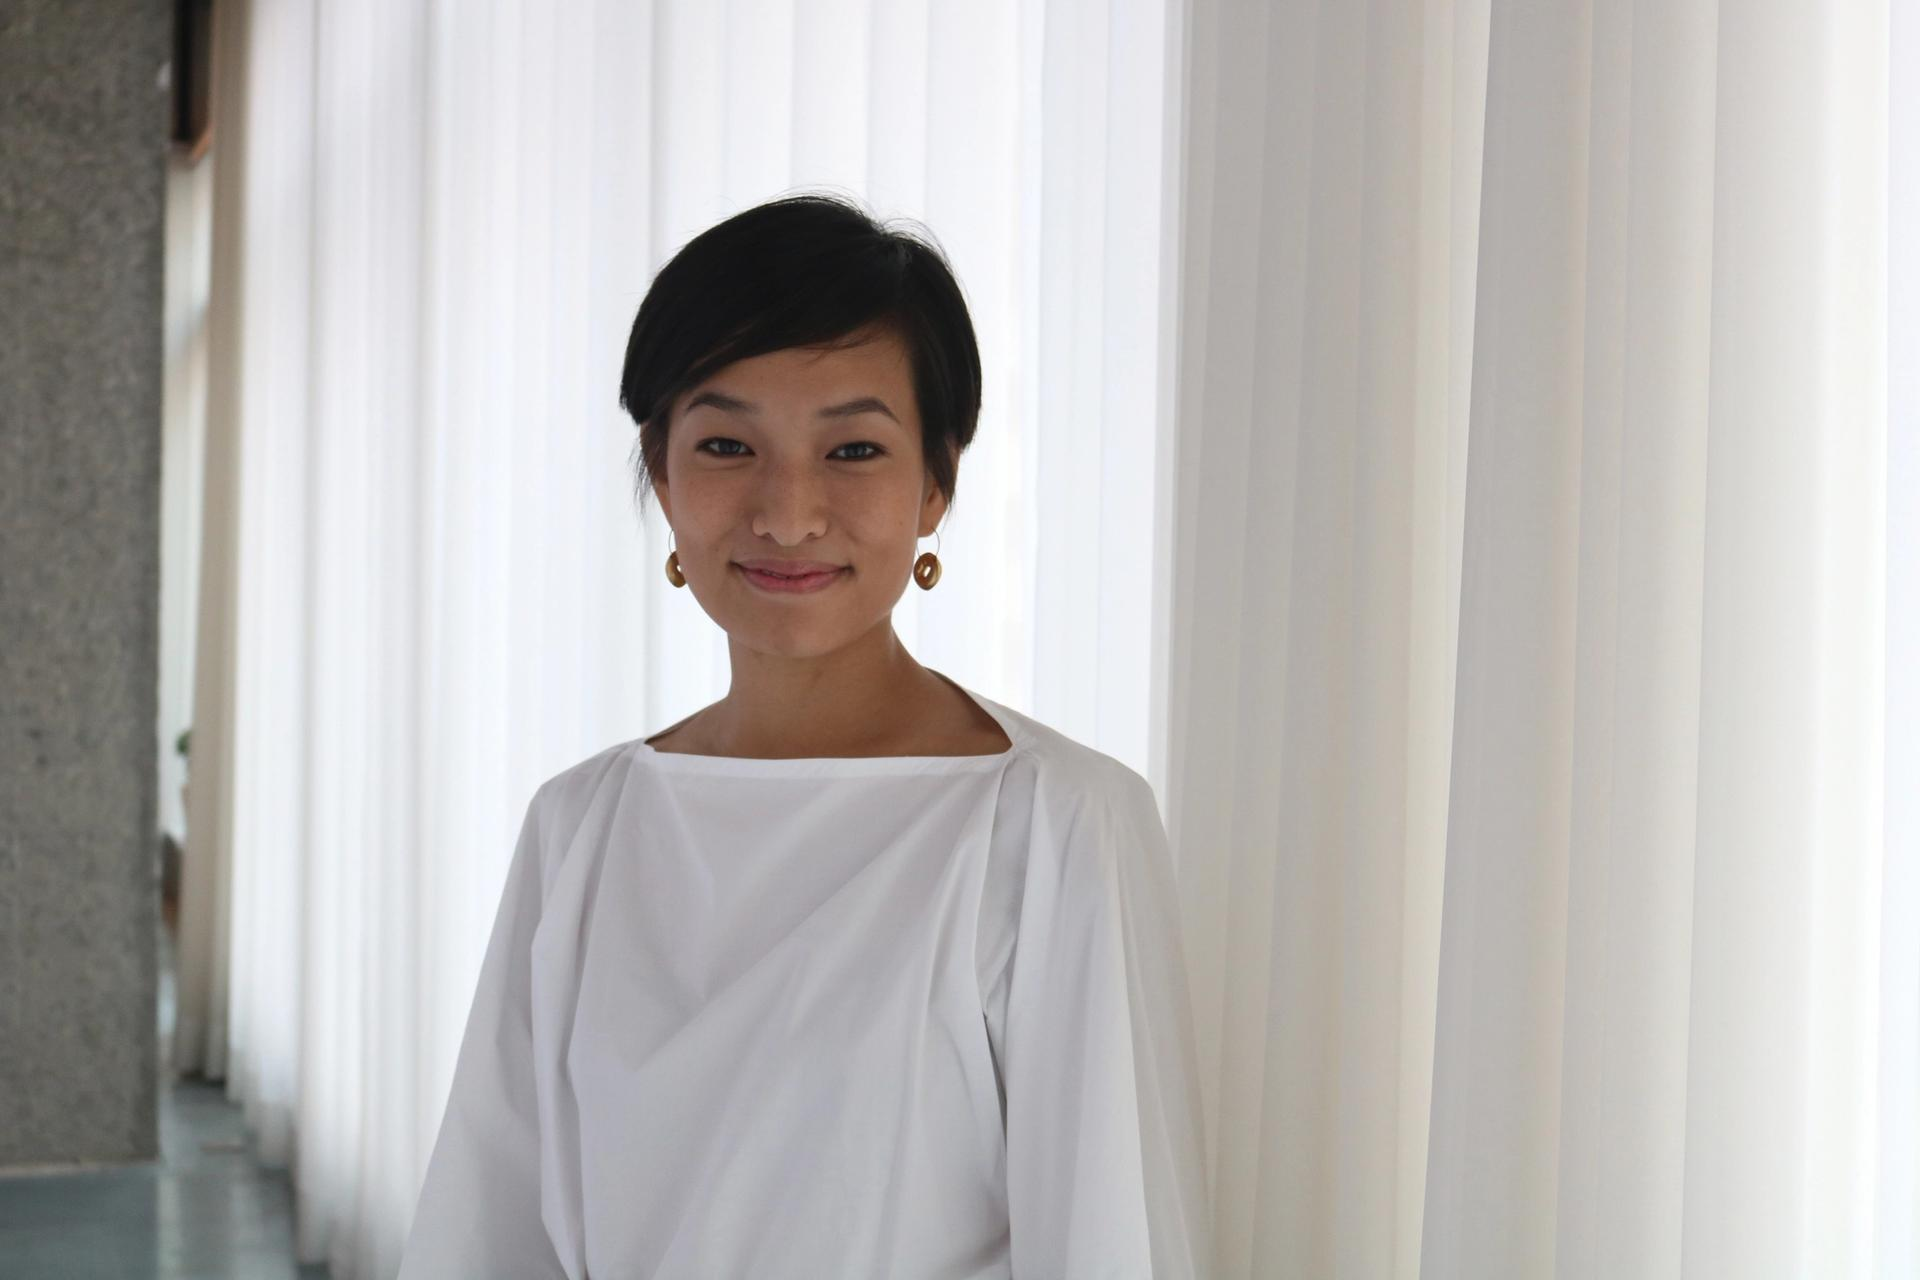 Lorraine Kiang Malingue set up the Edouard Malingue Gallery with her husband in 2010 Malingue: photo courtesy of Edouard Malingue Gallery